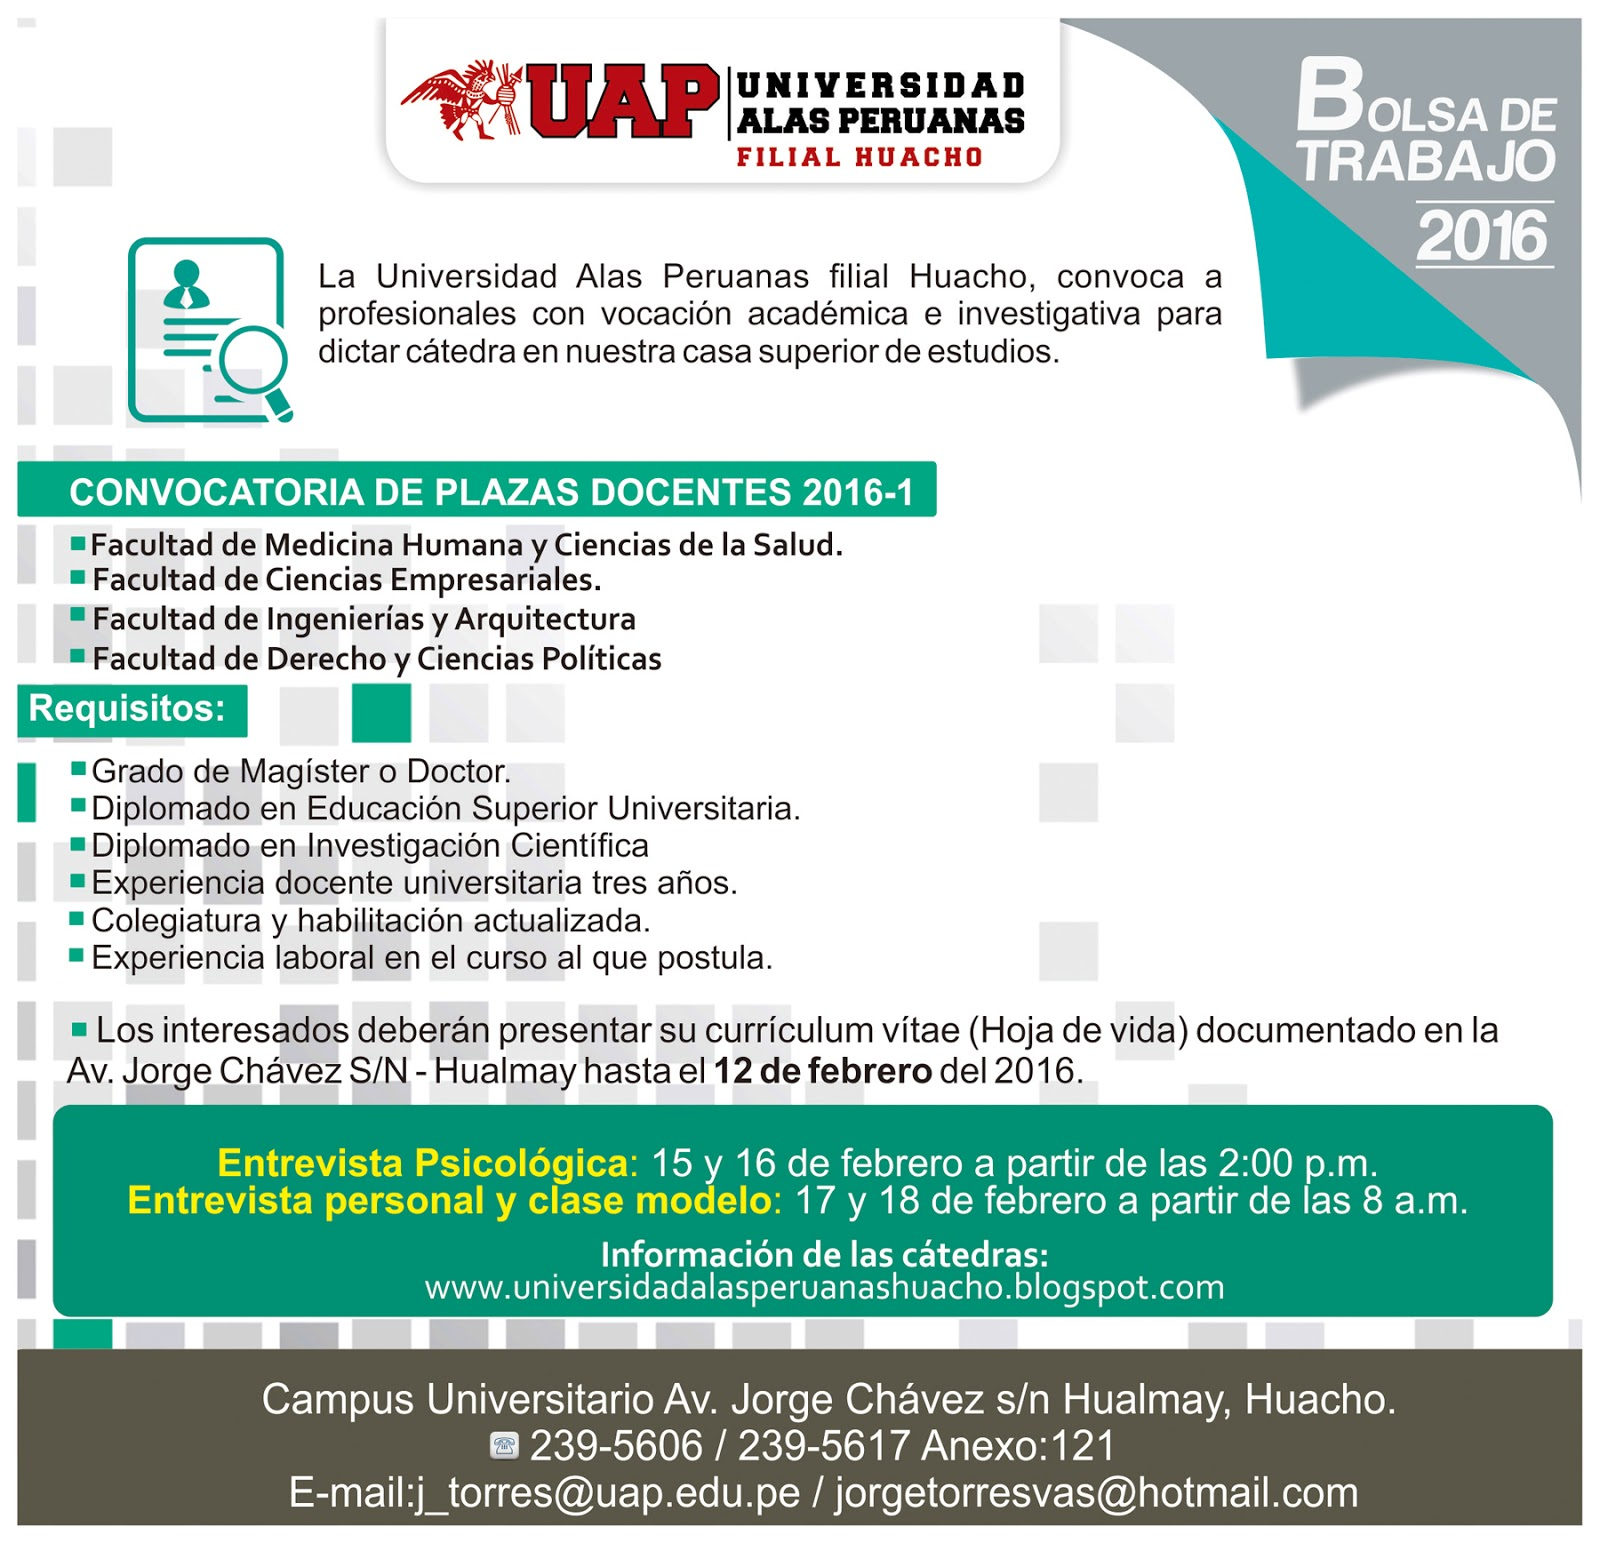 Universidad alas peruanas filial huacho convocatoria de for Convocatoria concurso docente 2016